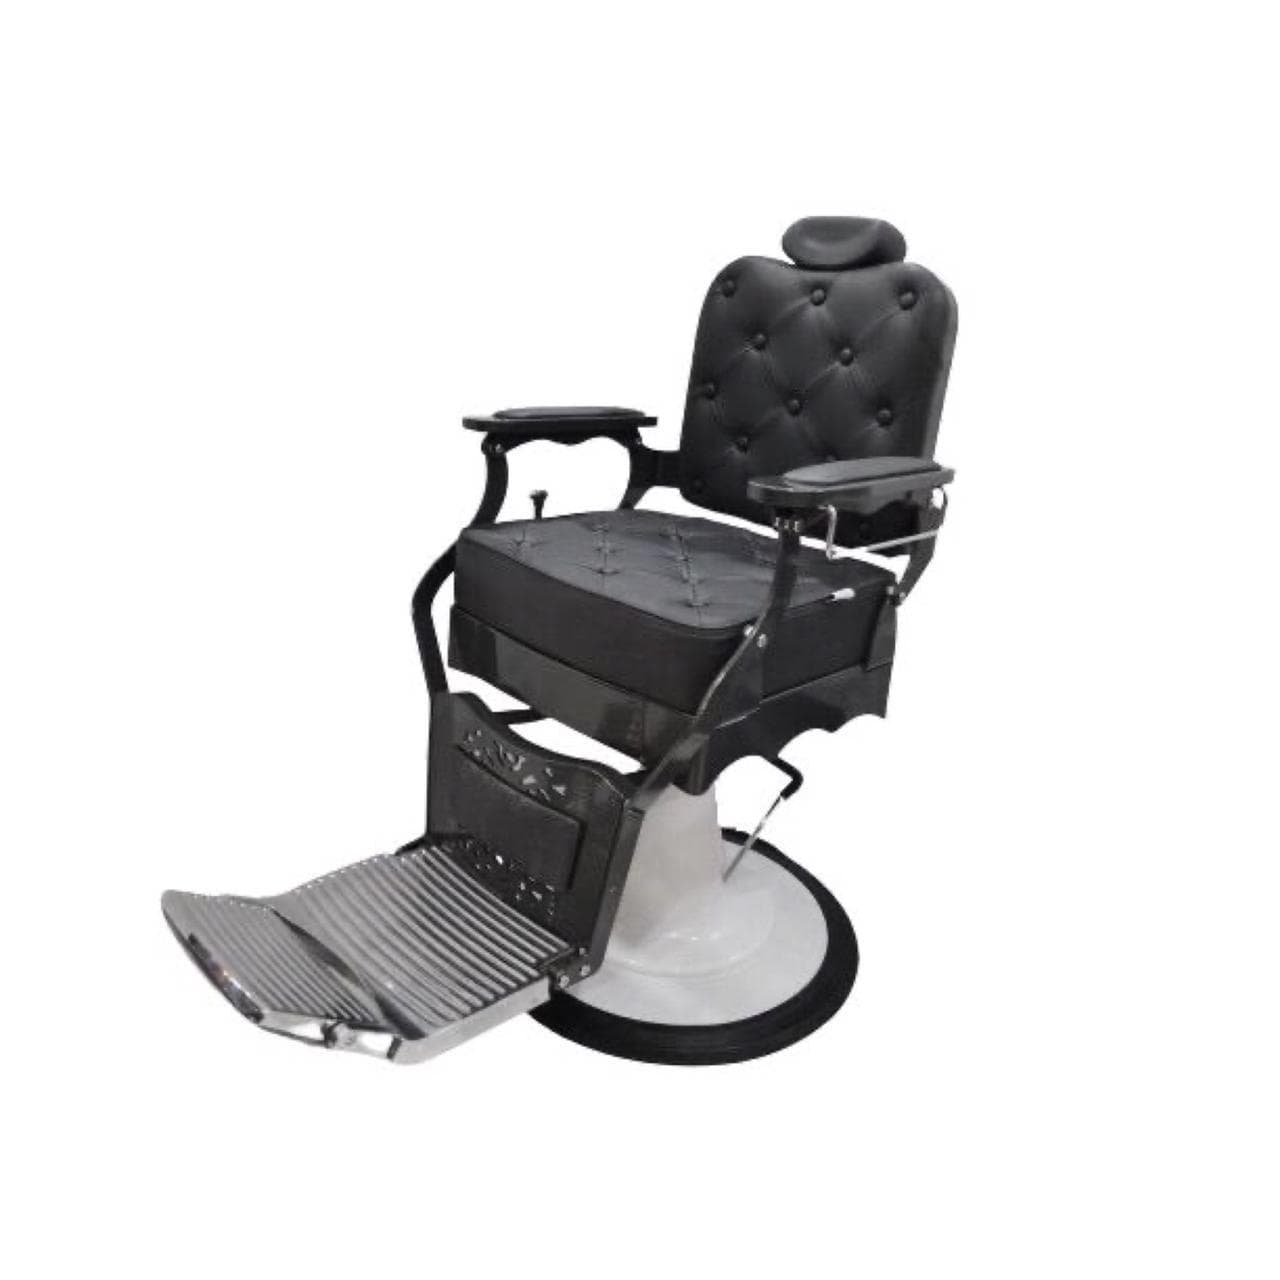 Black Professional Barber Chair BX-2915-1